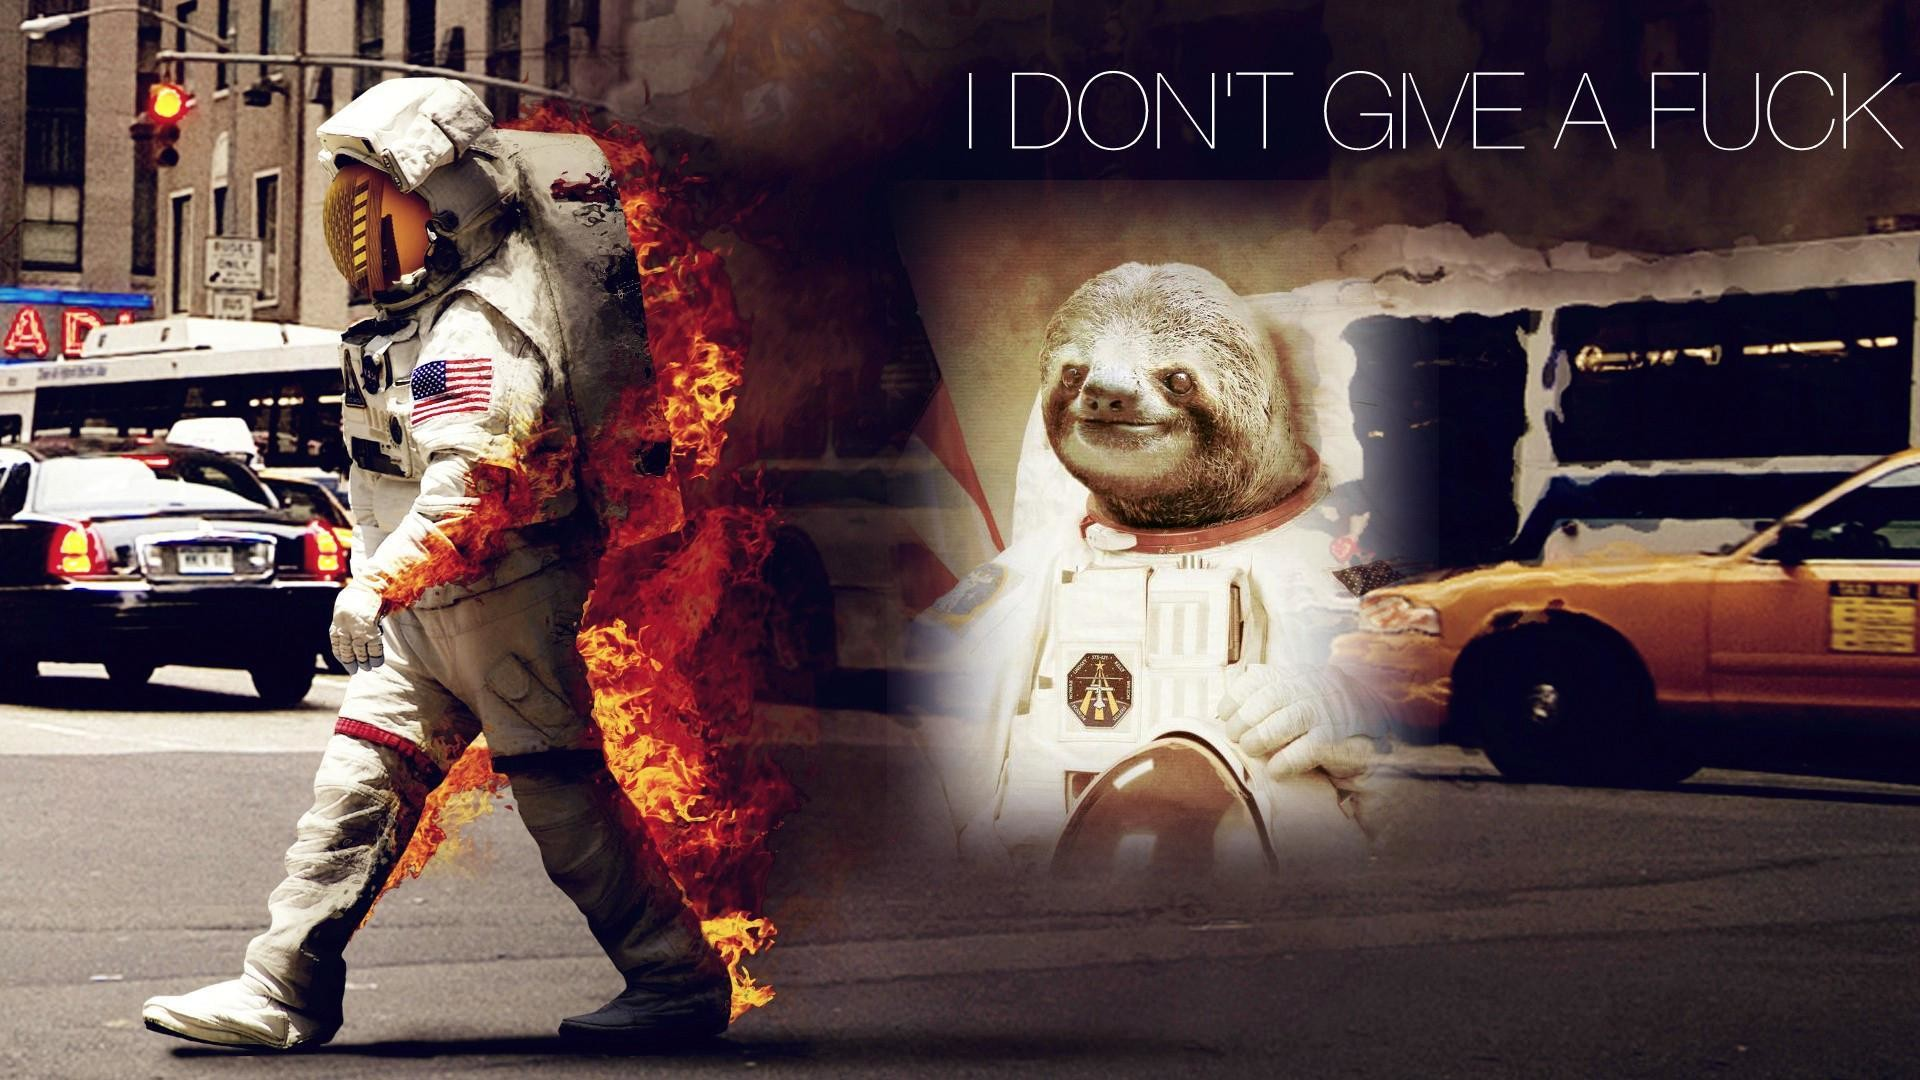 Idgaf Quotes Wallpaper Funny Sloth Wallpapers 73 Images